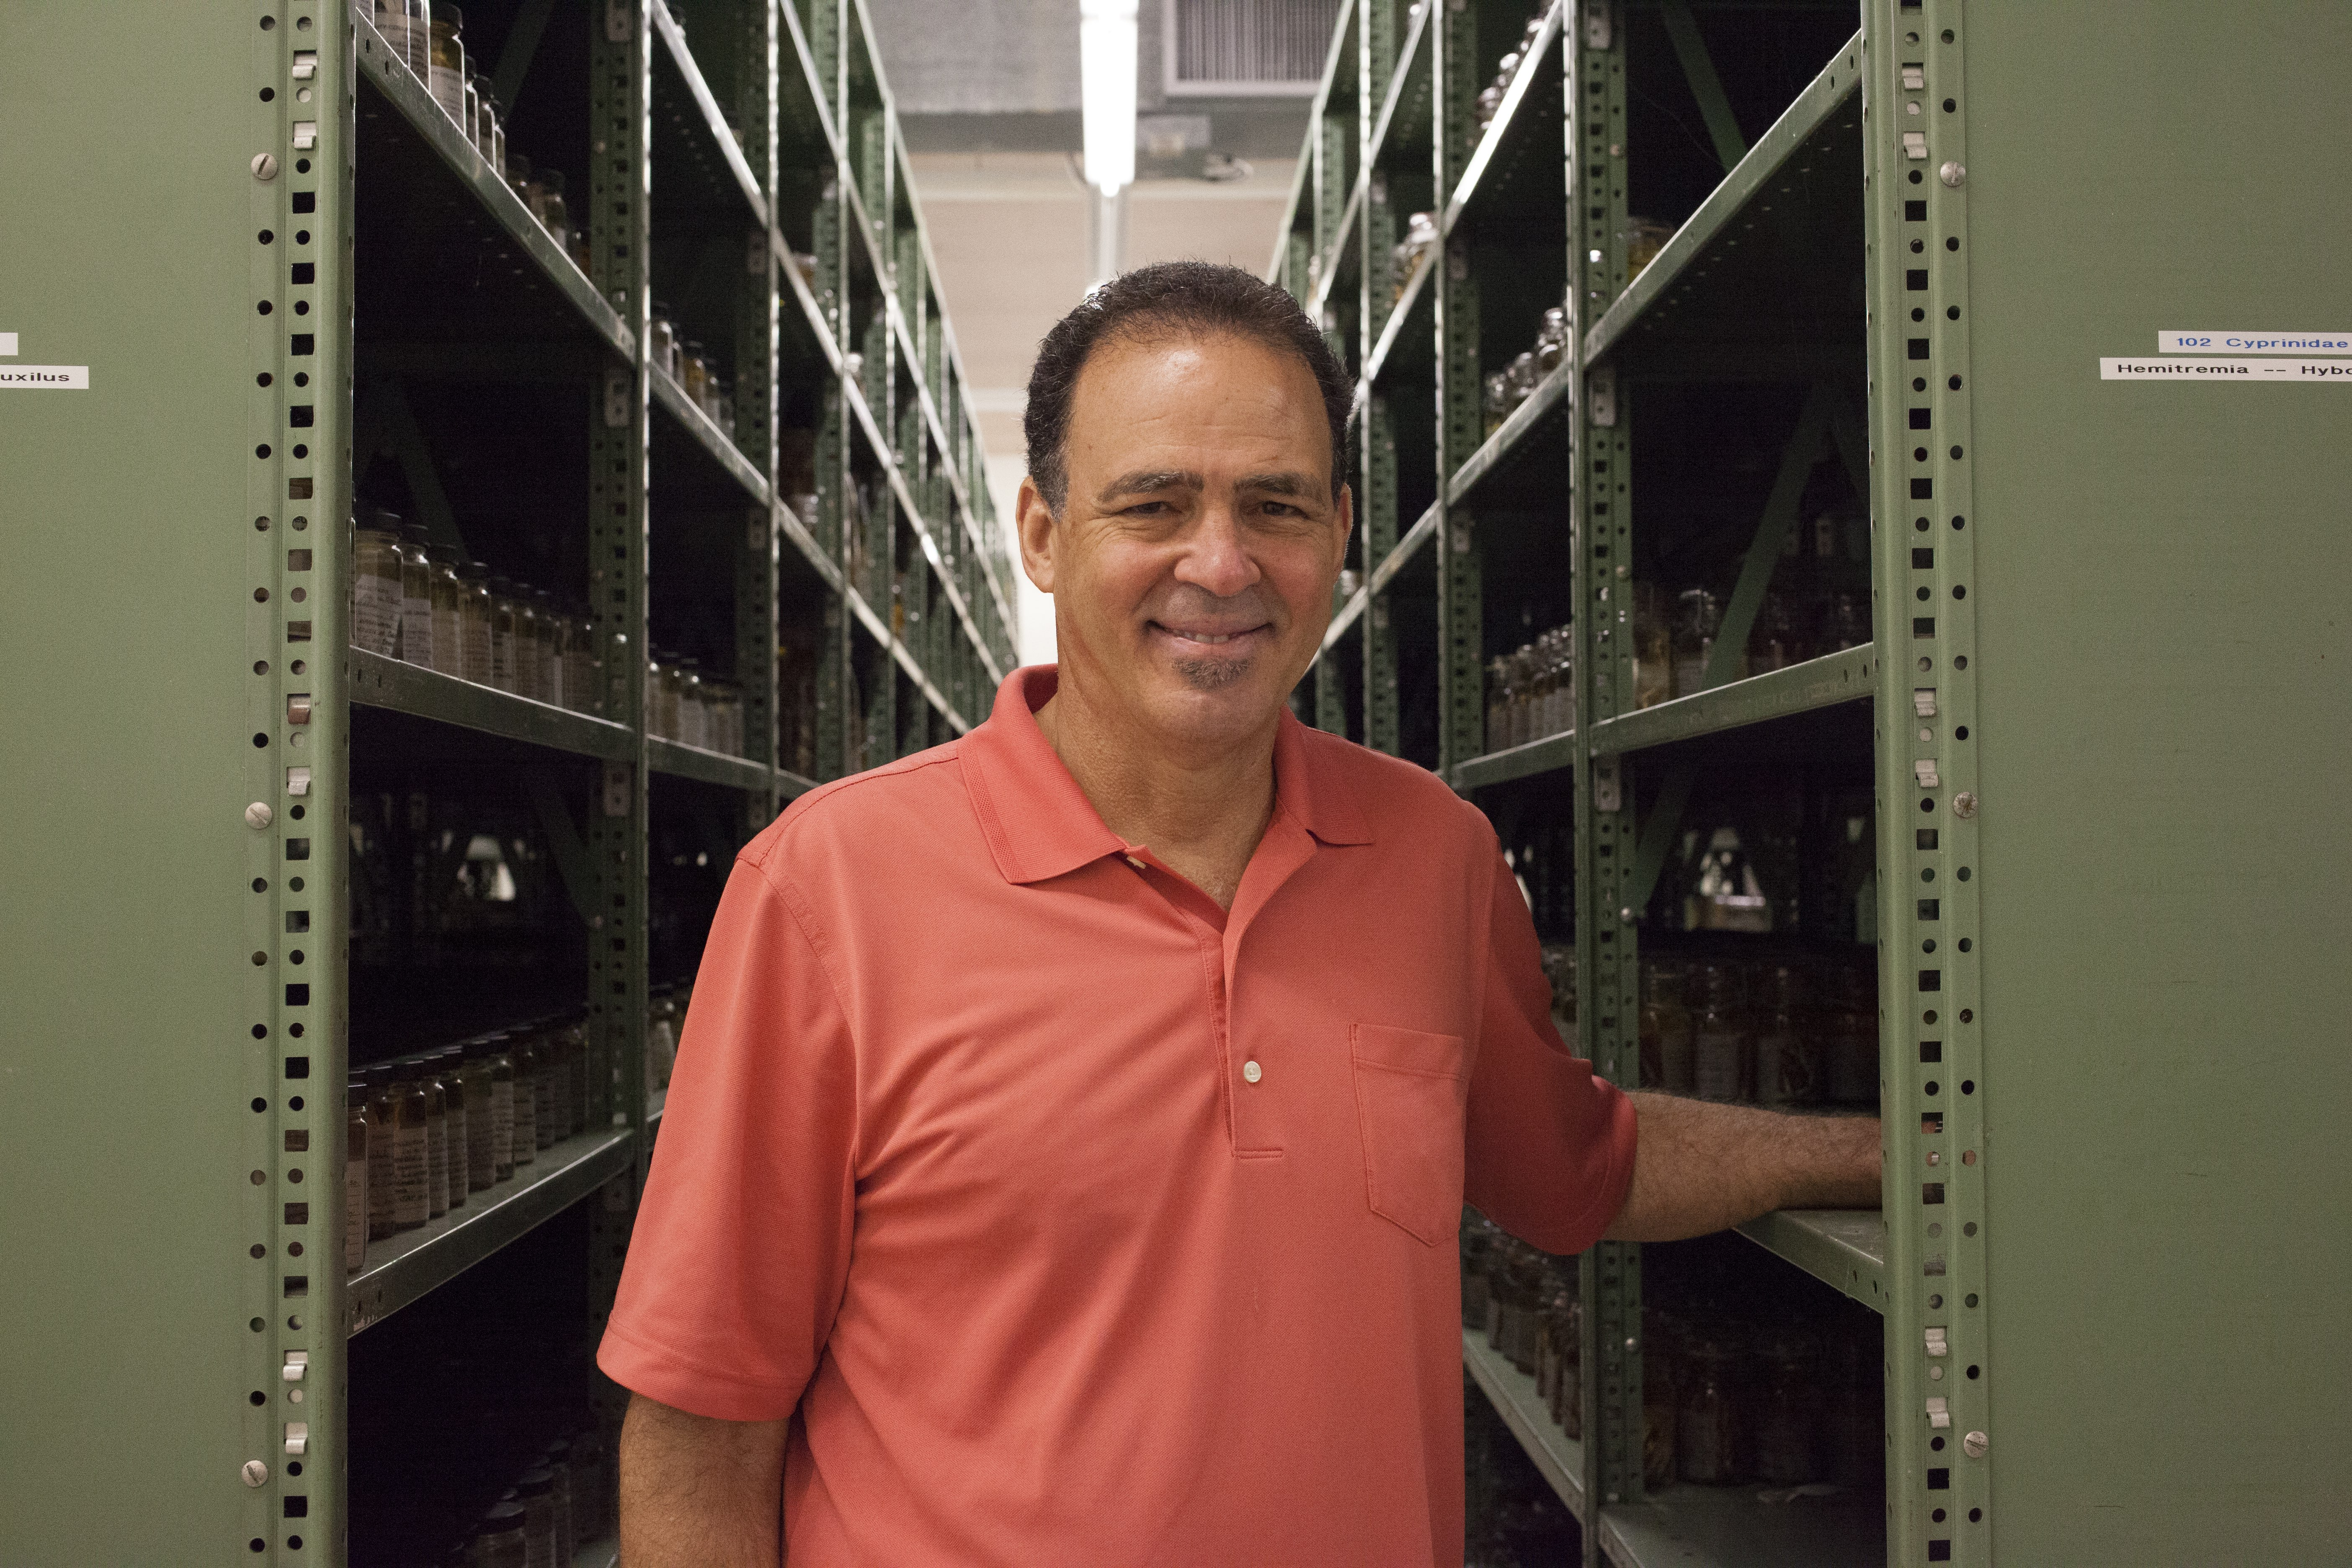 Hank Bart manages the fish collection at Tulane University, where much of the ULM collection will end up. He's worried about the fate of Tulane's collection after he retires, as well, but is taking steps to preserve it. (Irina Zhorov/The Pulse)